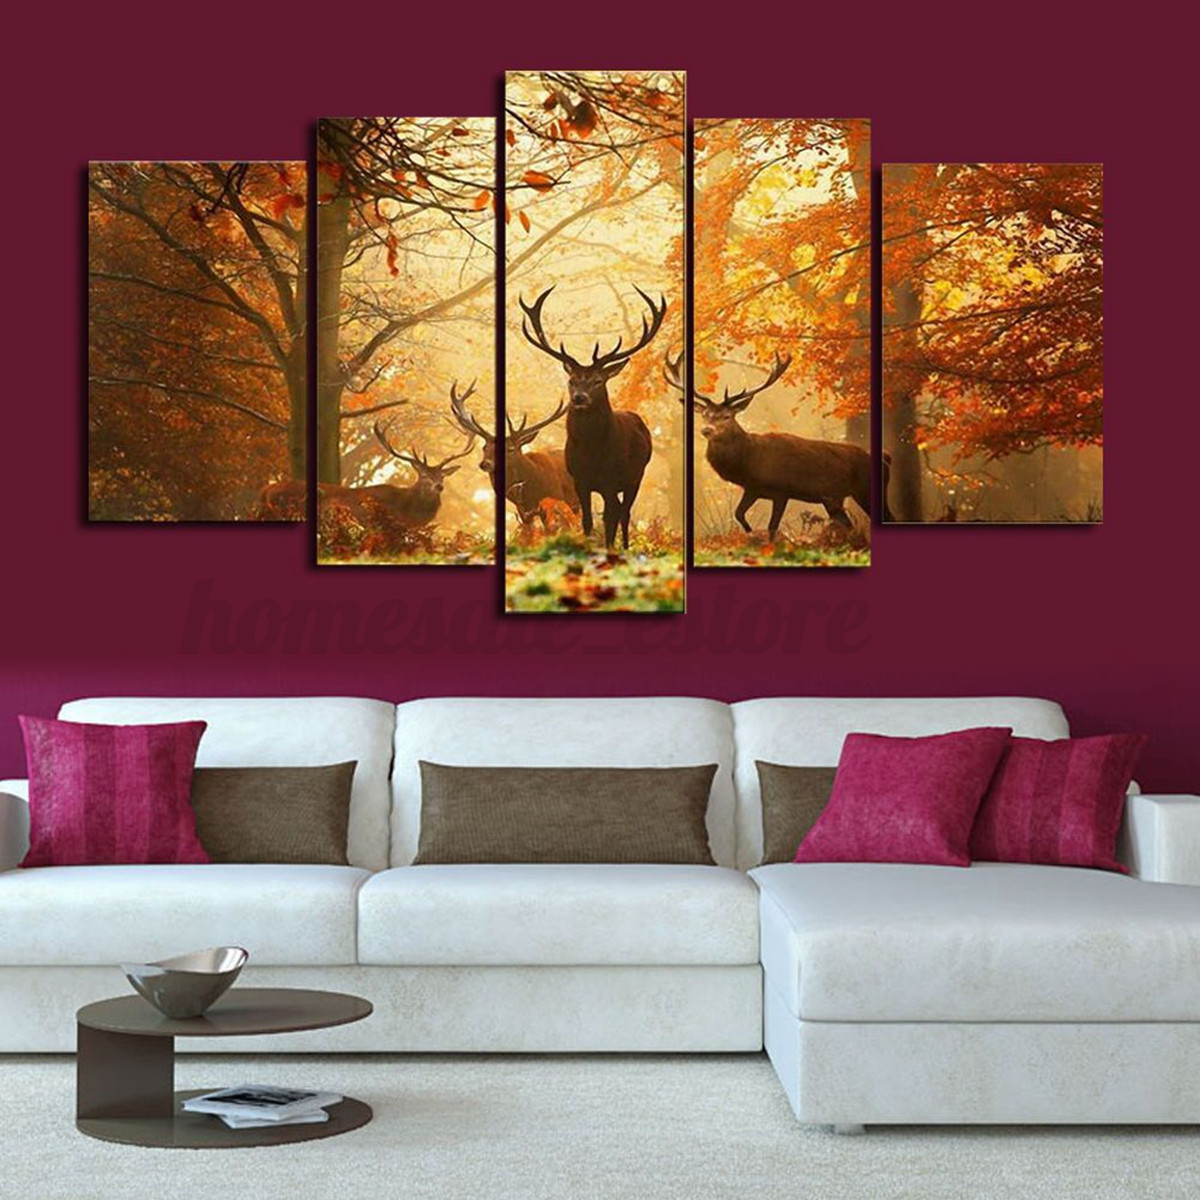 hd canvas print modern scenery animal wall art oil painting home decor unframed ebay. Black Bedroom Furniture Sets. Home Design Ideas